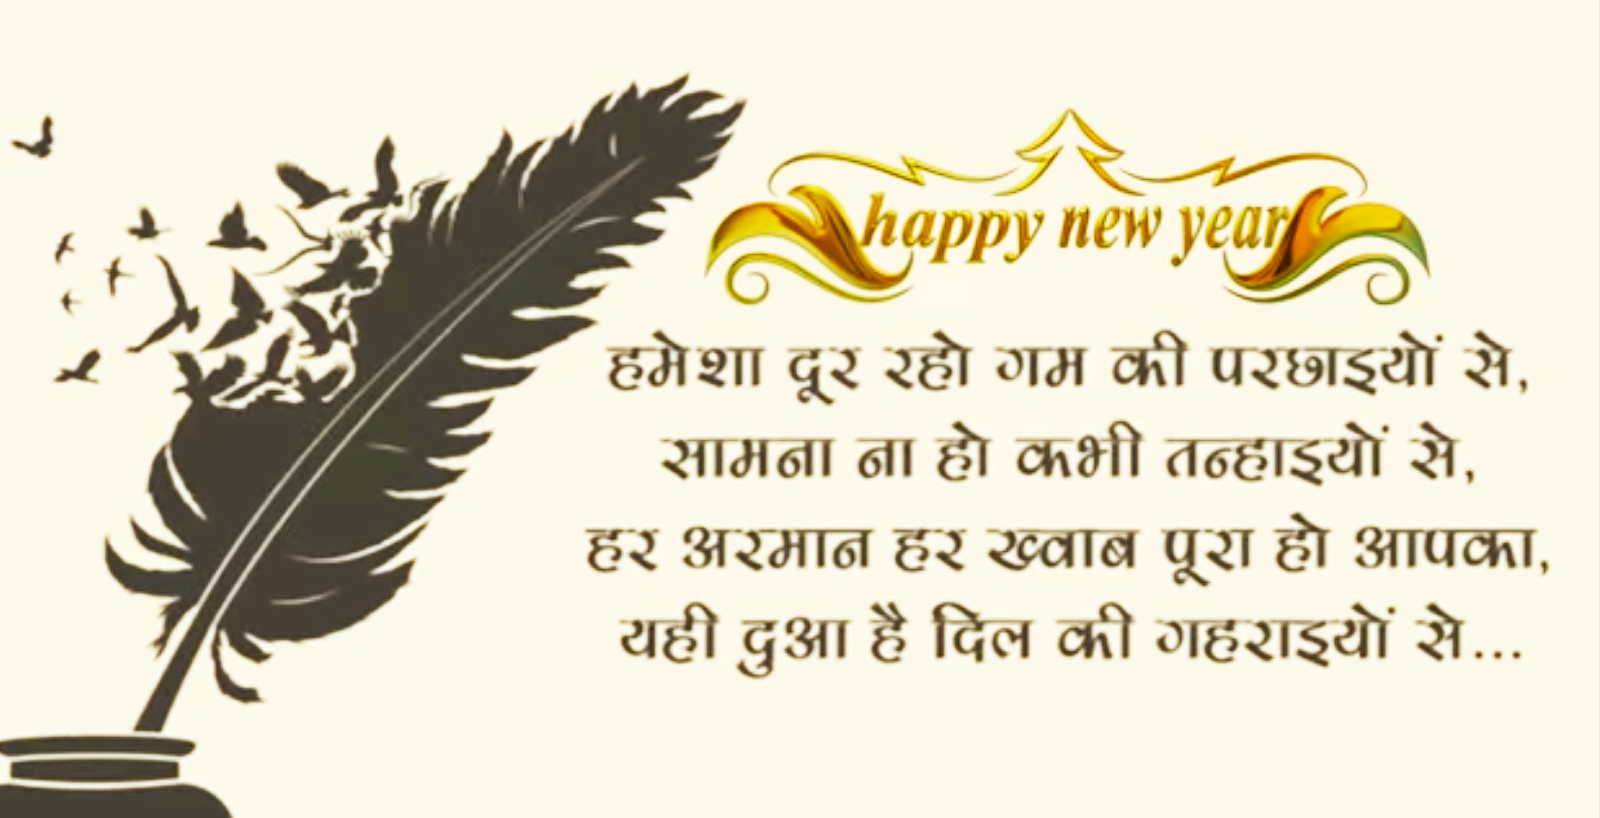 Happy New Year Shayari 2020 in Hindi | Happy New Year 2020 Quotes in Hindi | Hindi Shayari Happy New Year 2020 | नया साल मुबारक शायरी | New Year 2020 Shayari in Hindi |